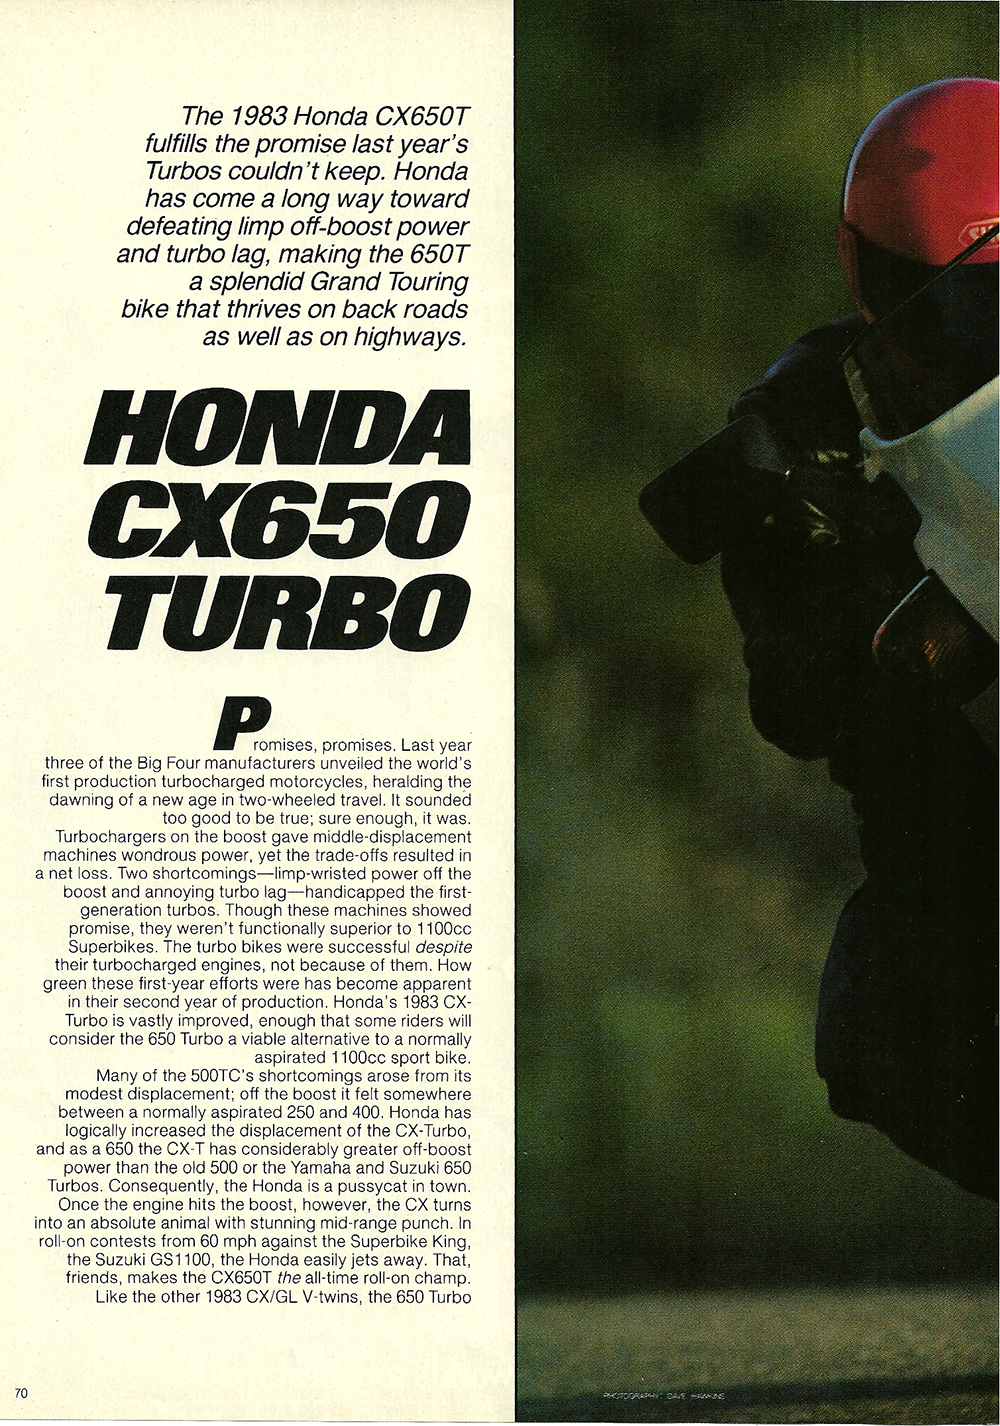 1983 Honda CX650 turbo road test 1.jpg